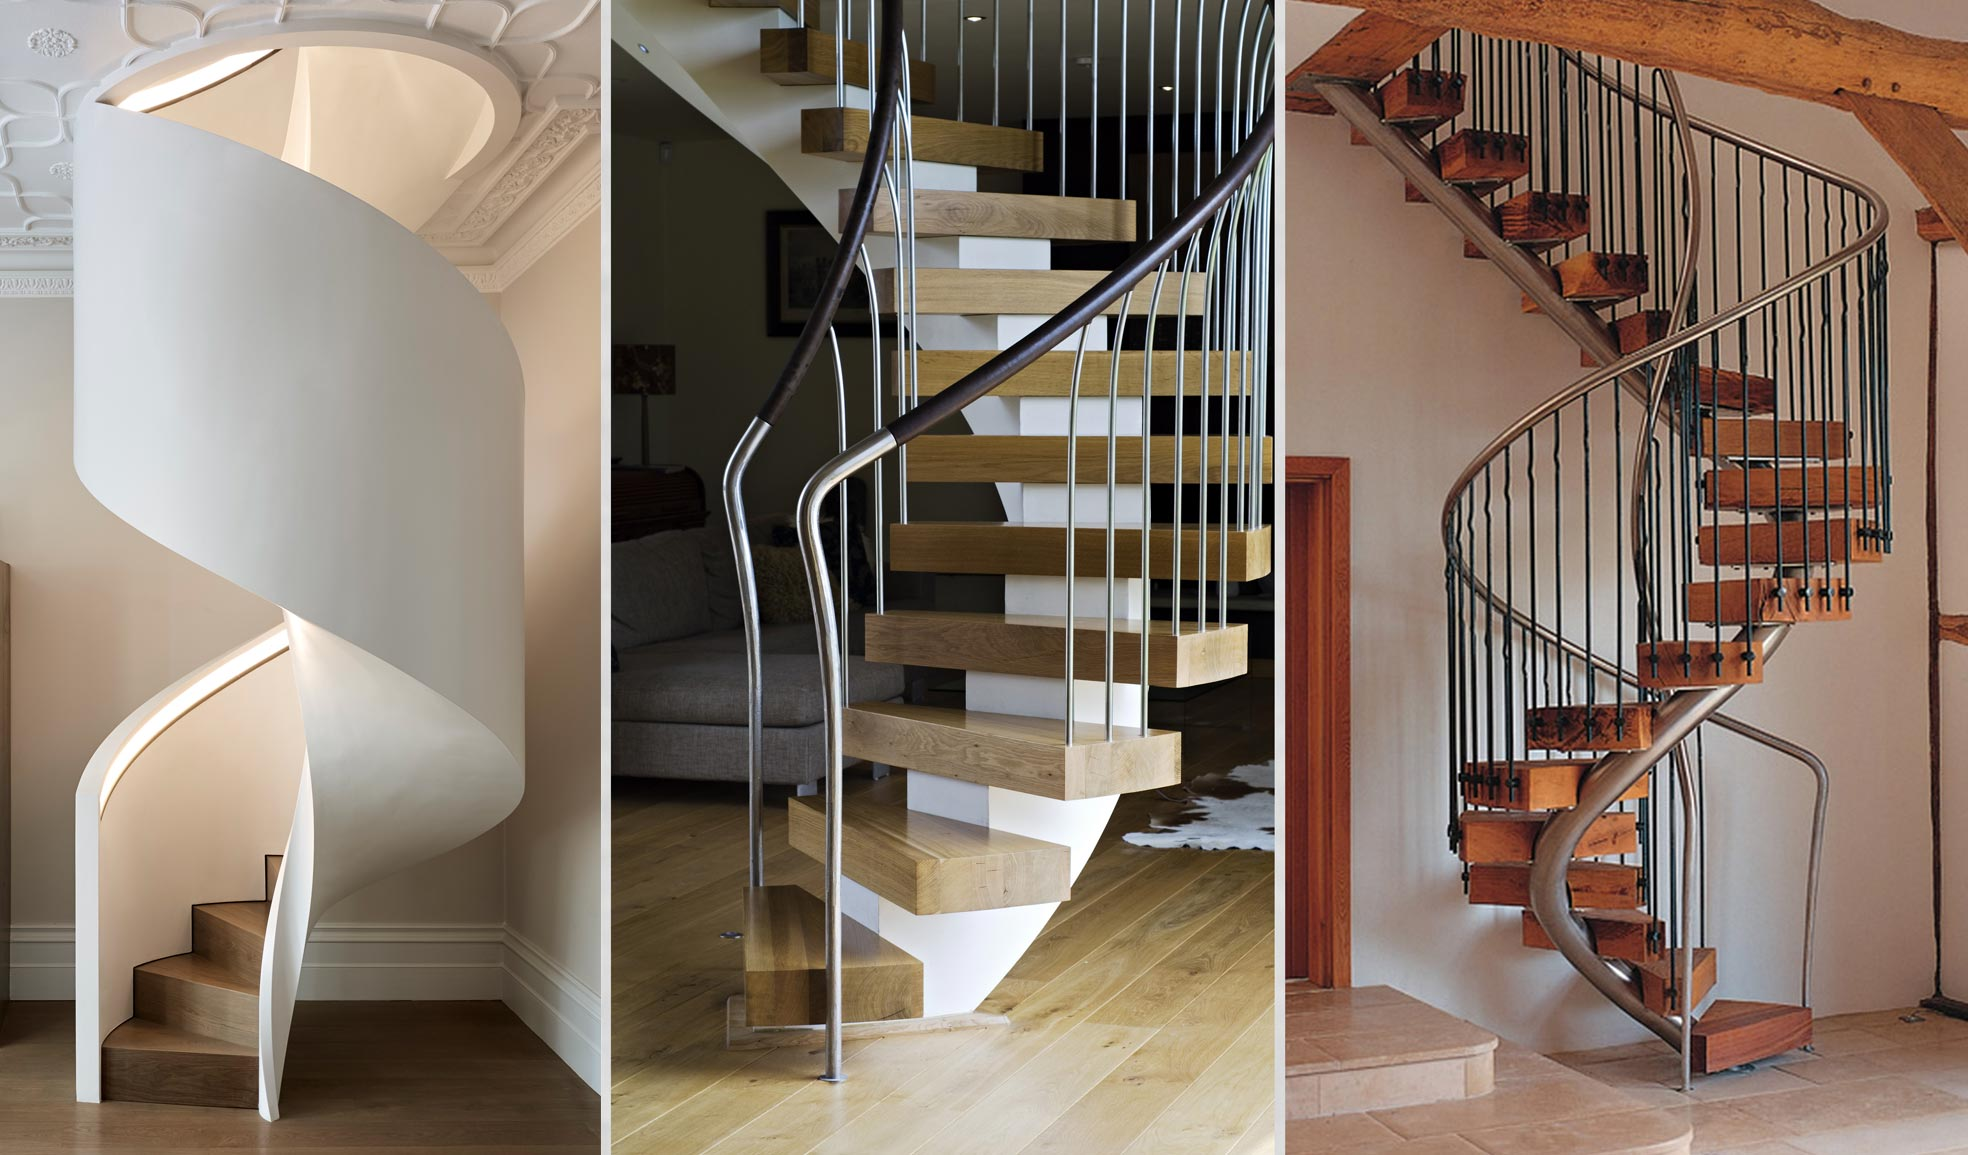 helical stairs commonly mistaken in the media for spirals